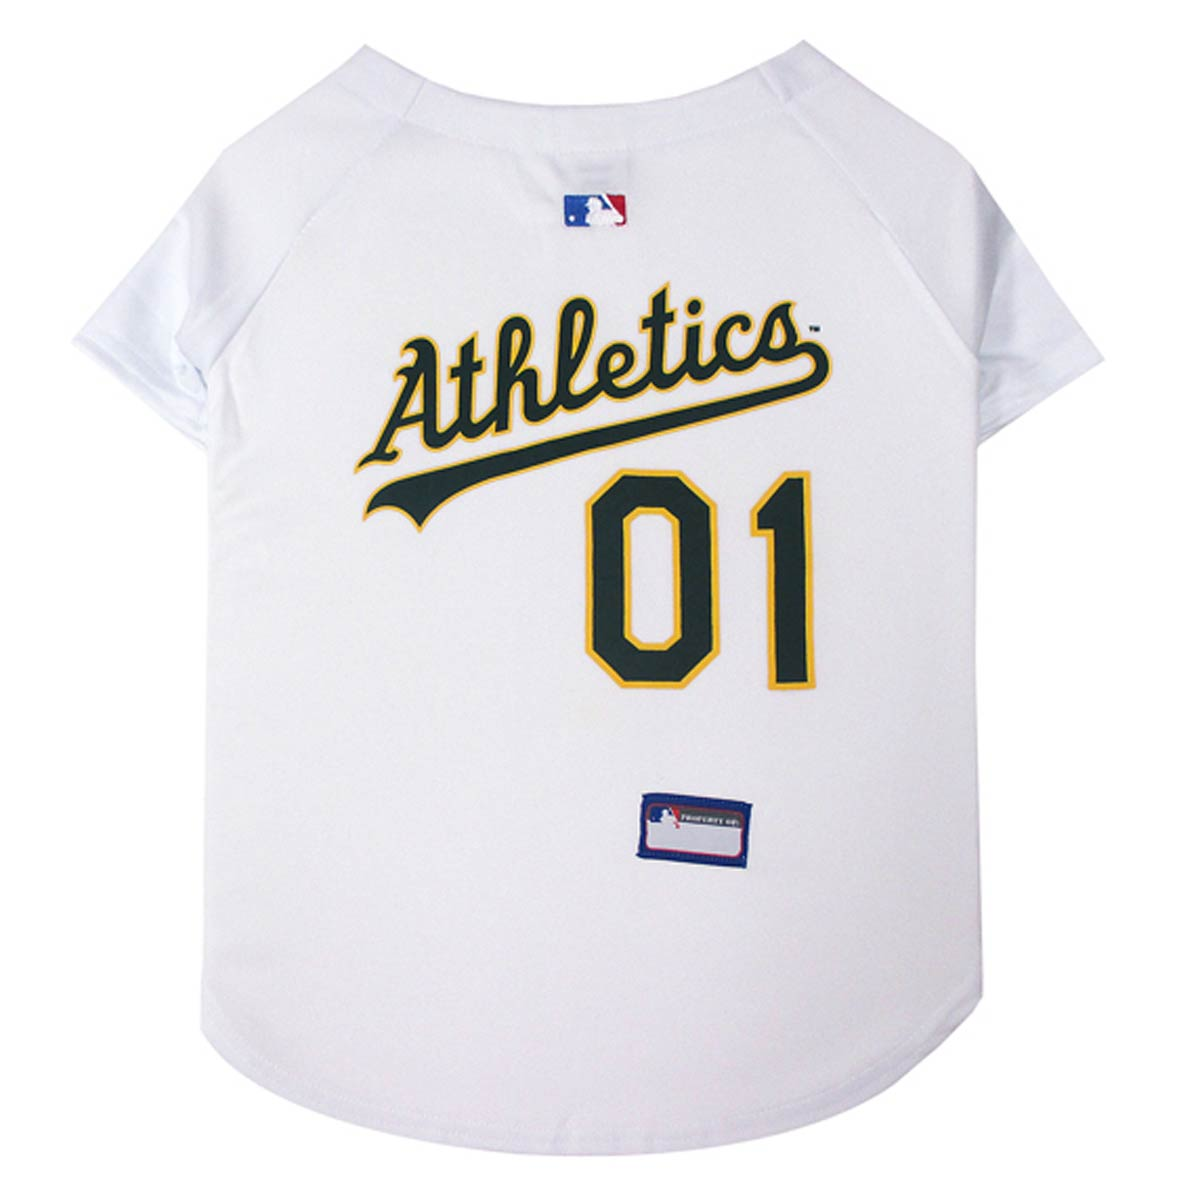 competitive price ceb97 c36e6 Oakland Athletics Officially Licensed Dog Jersey - White